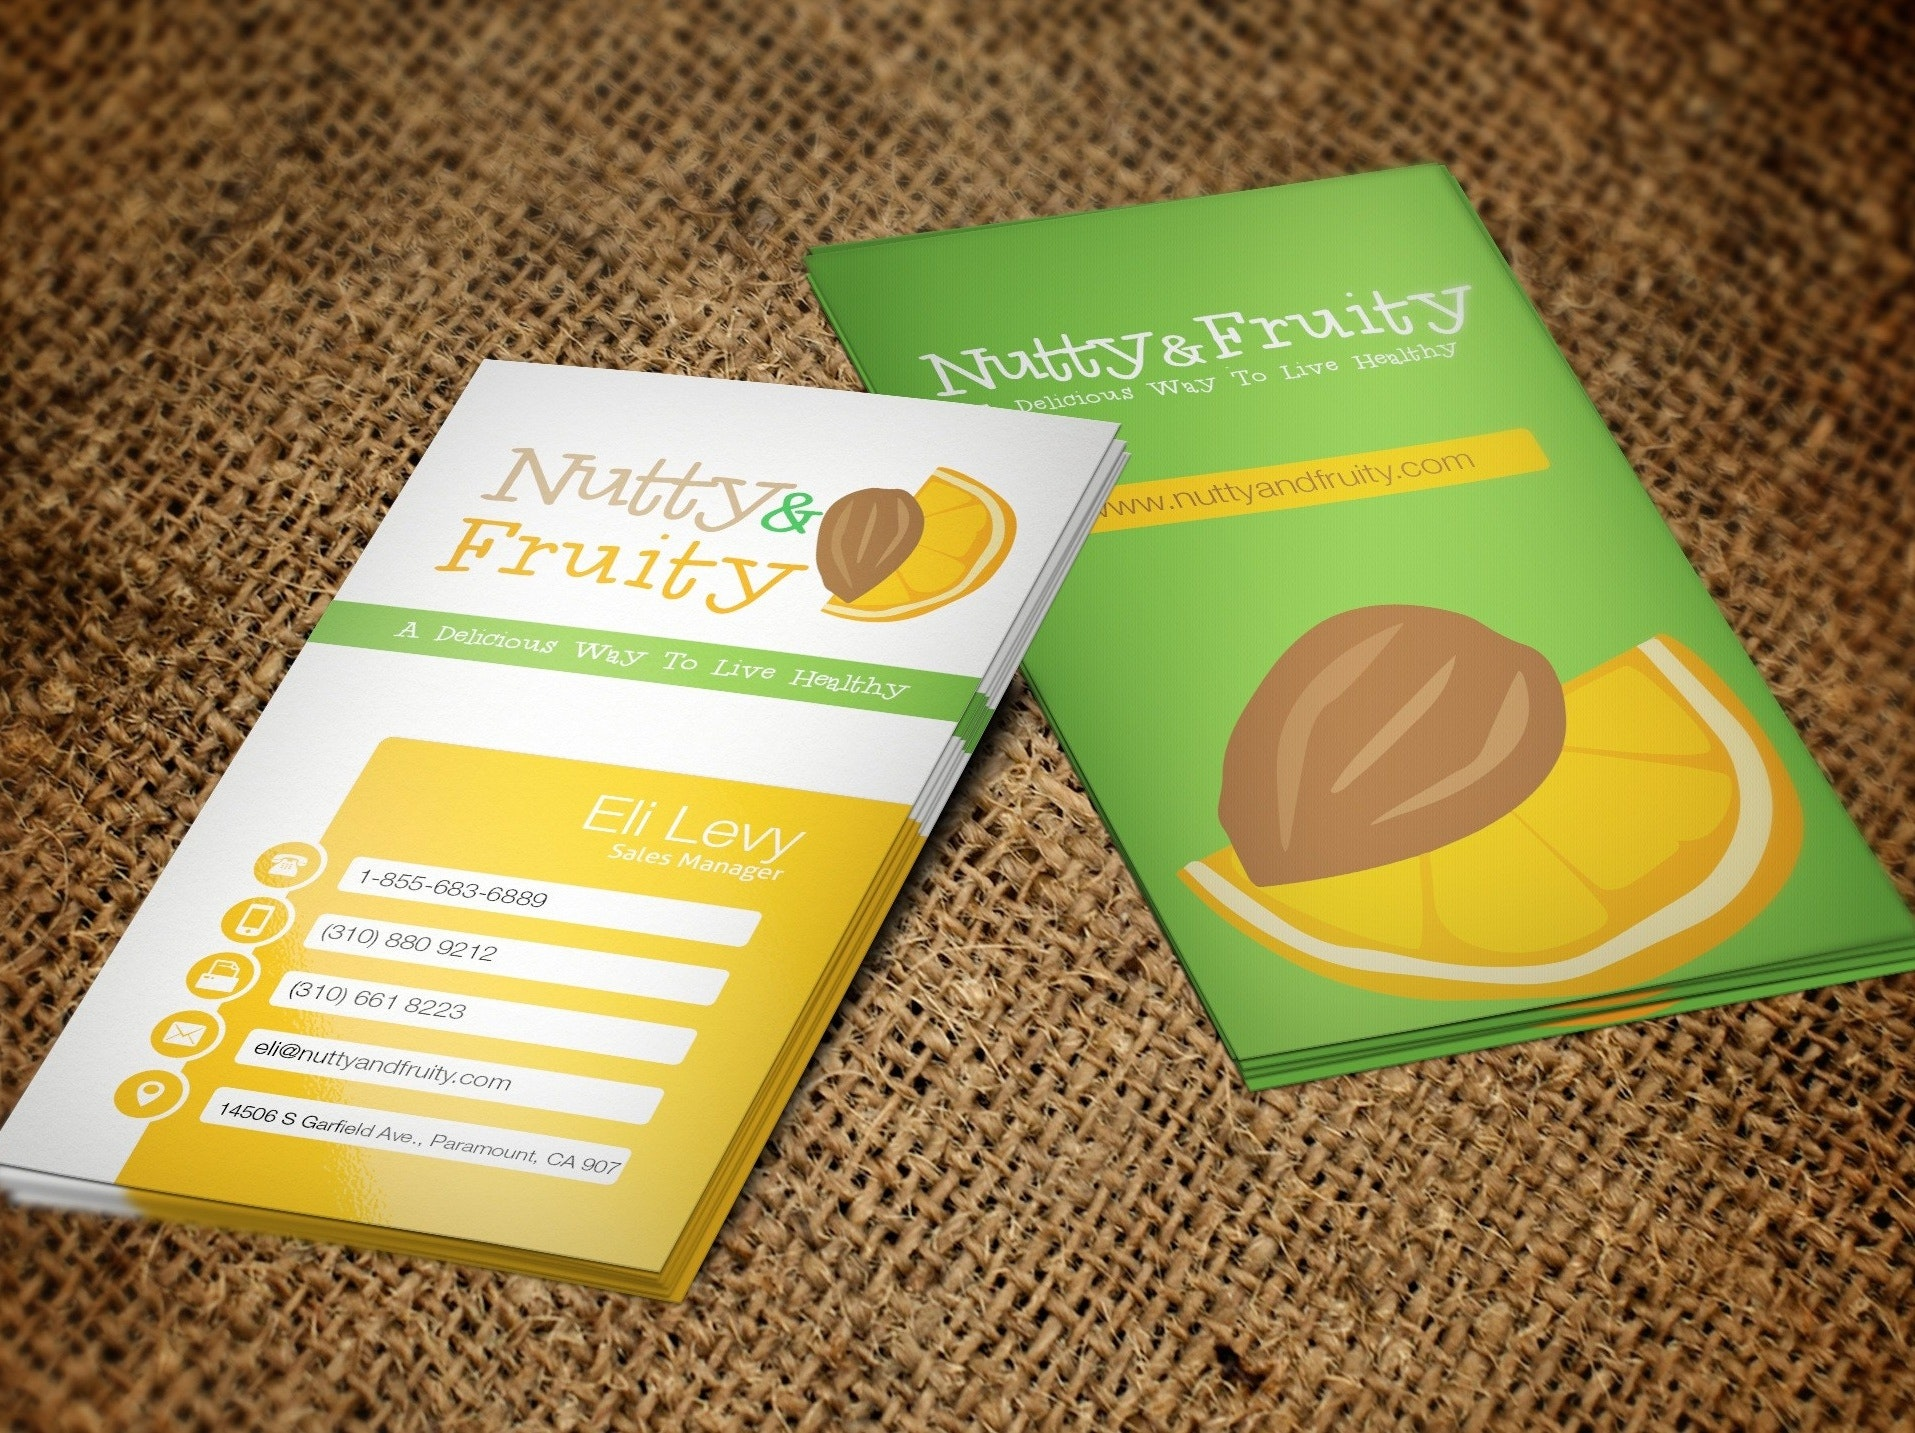 Nutty and Fruity business card